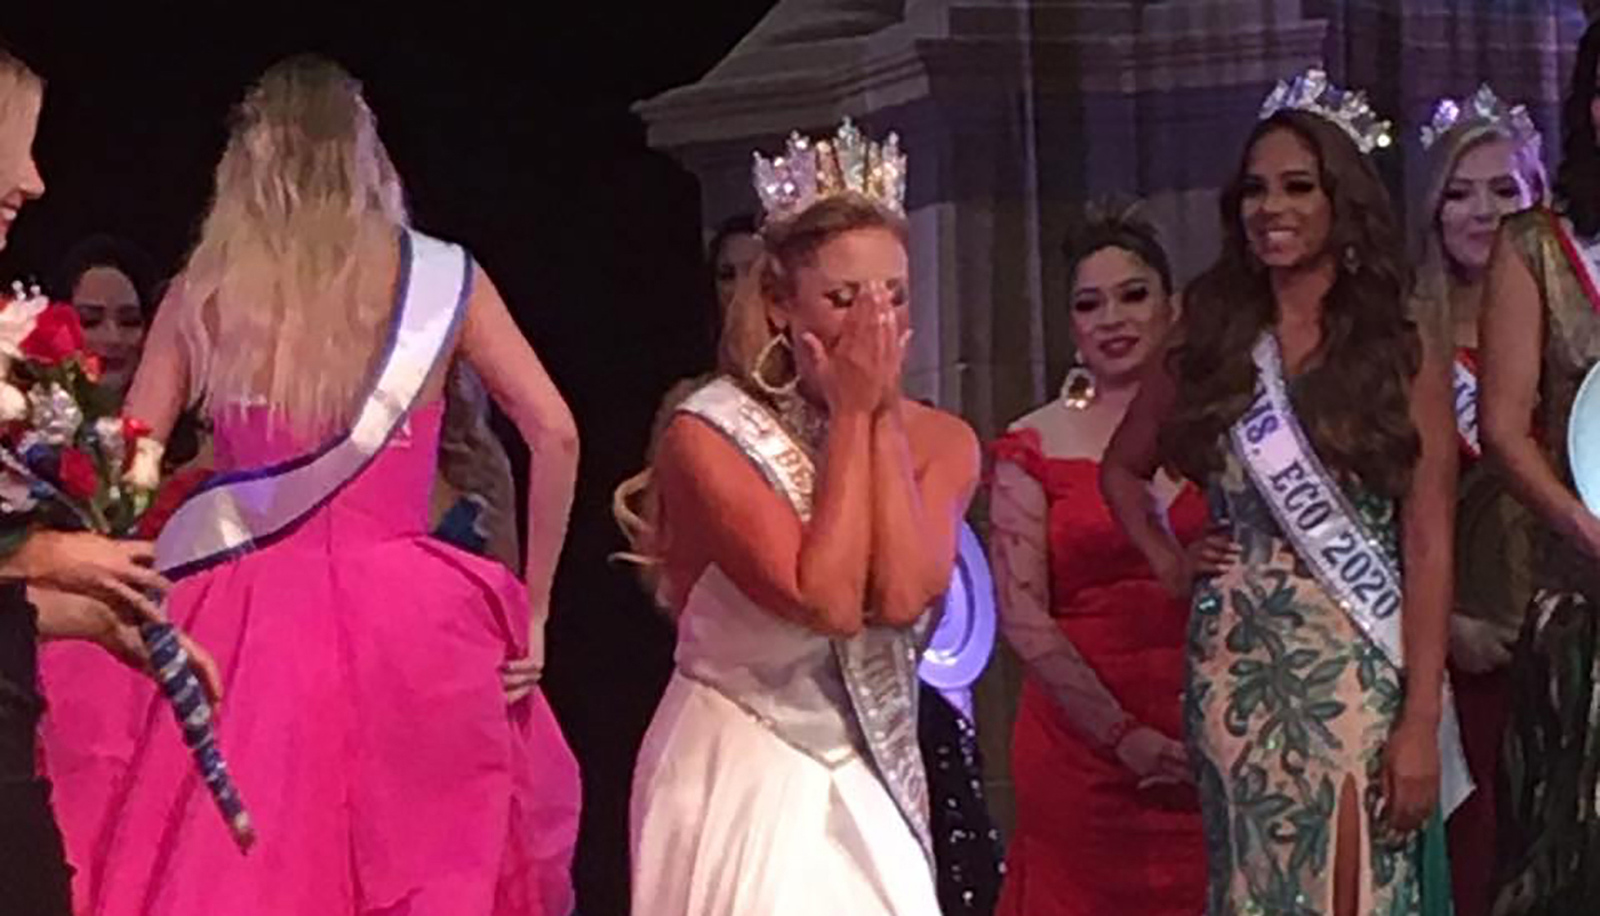 Image for International pageant title holder scores most points on stage and in her community